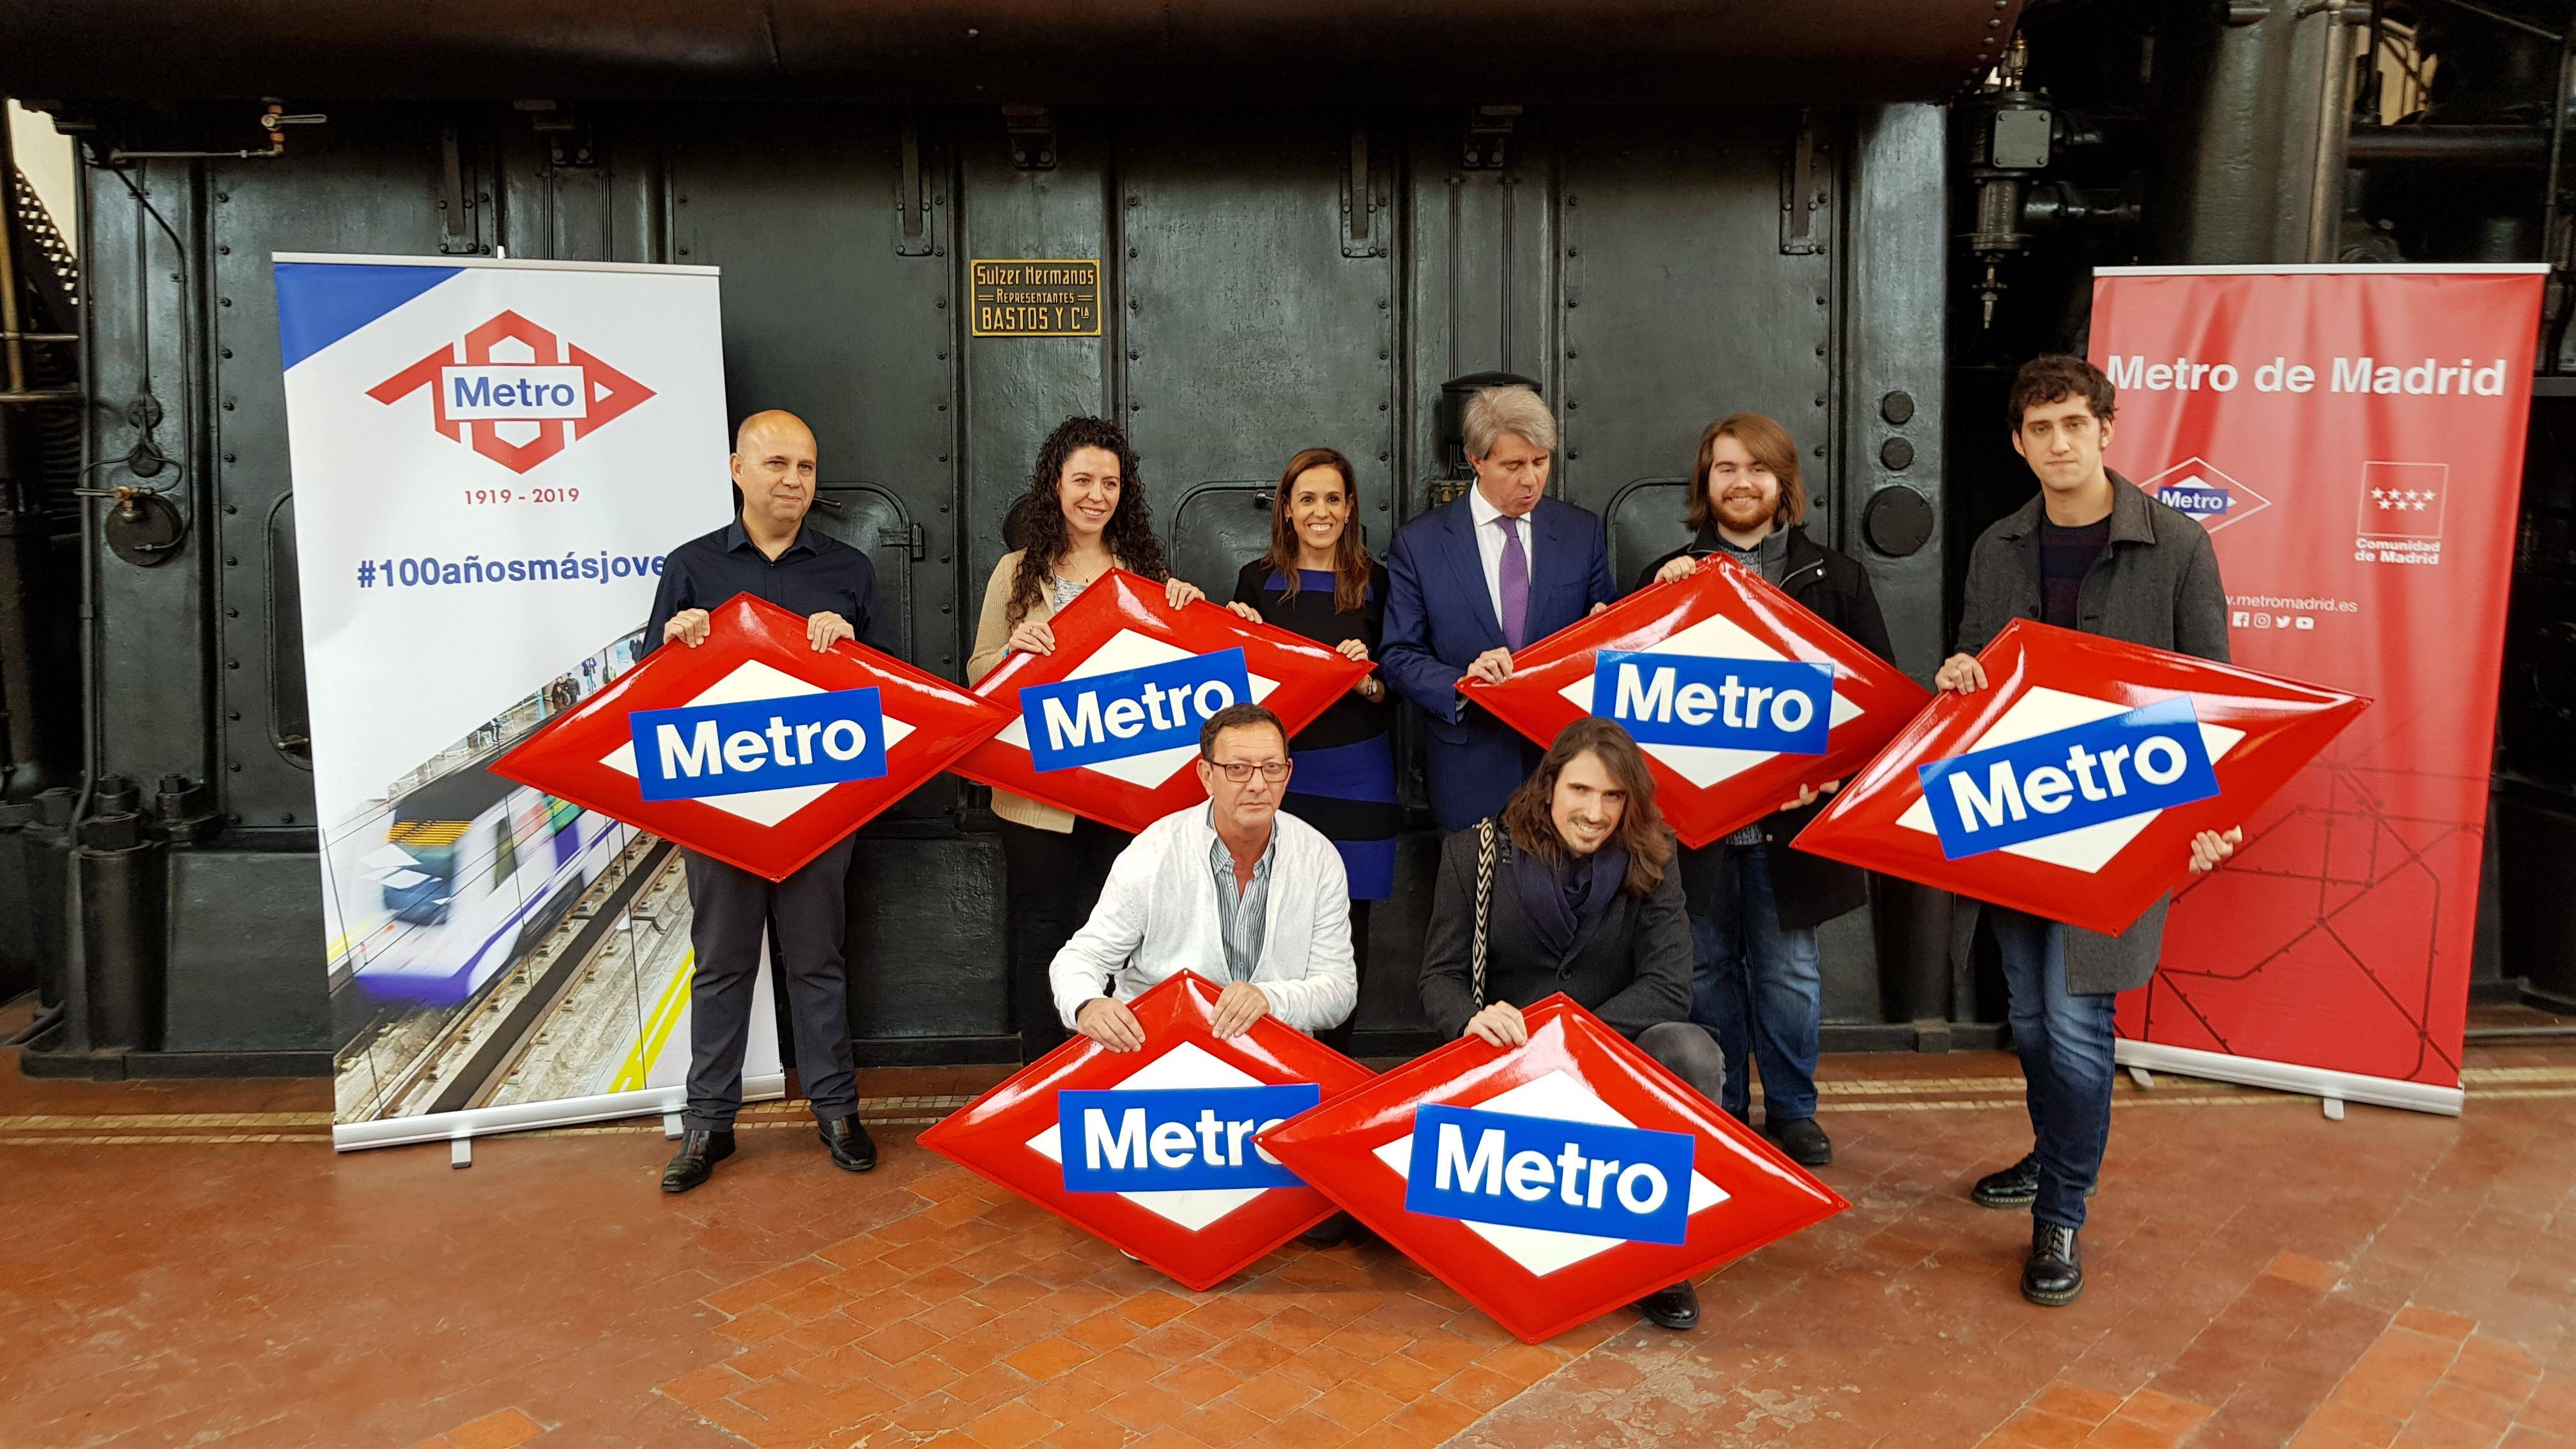 Winners pose next to the Regional Councillor for Transport, Ángel Garrido